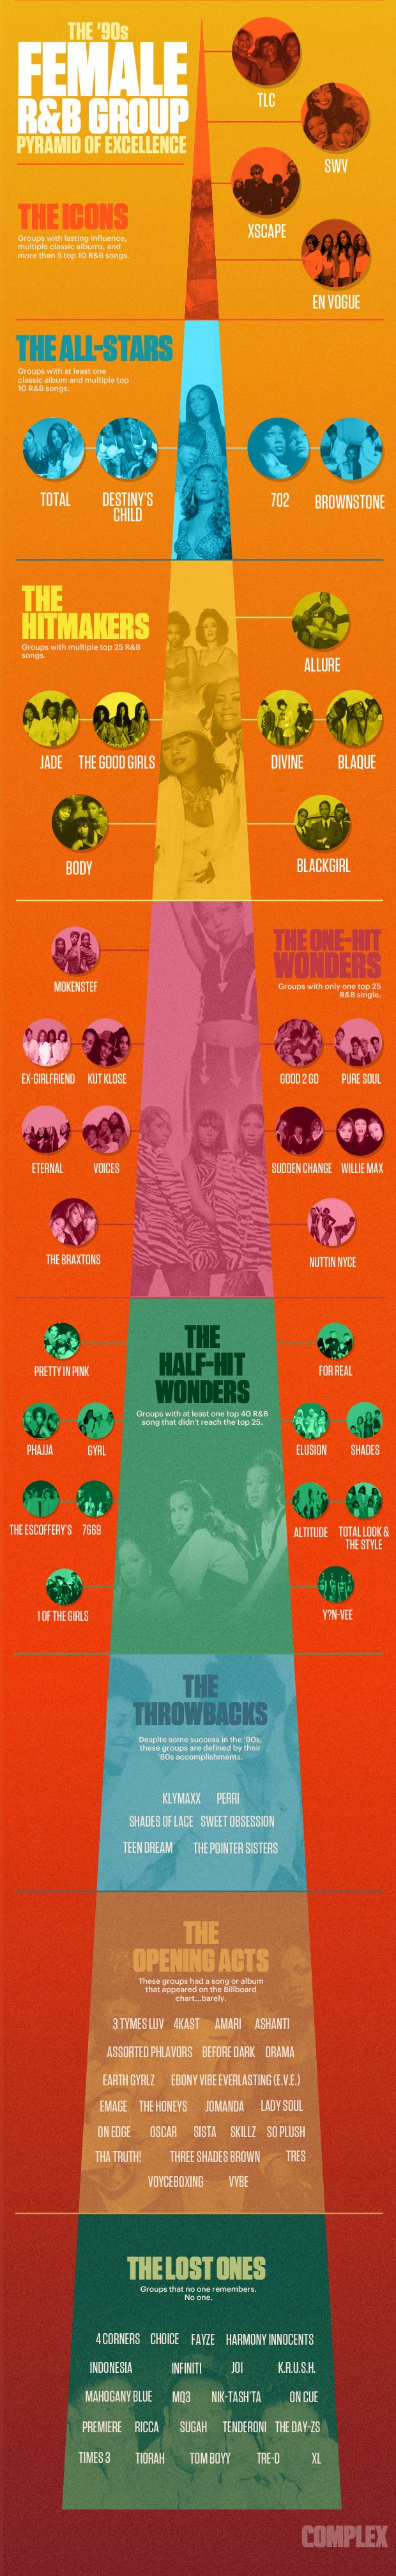 The '90s Female R&B Group Pyramid of Excellence | Complex